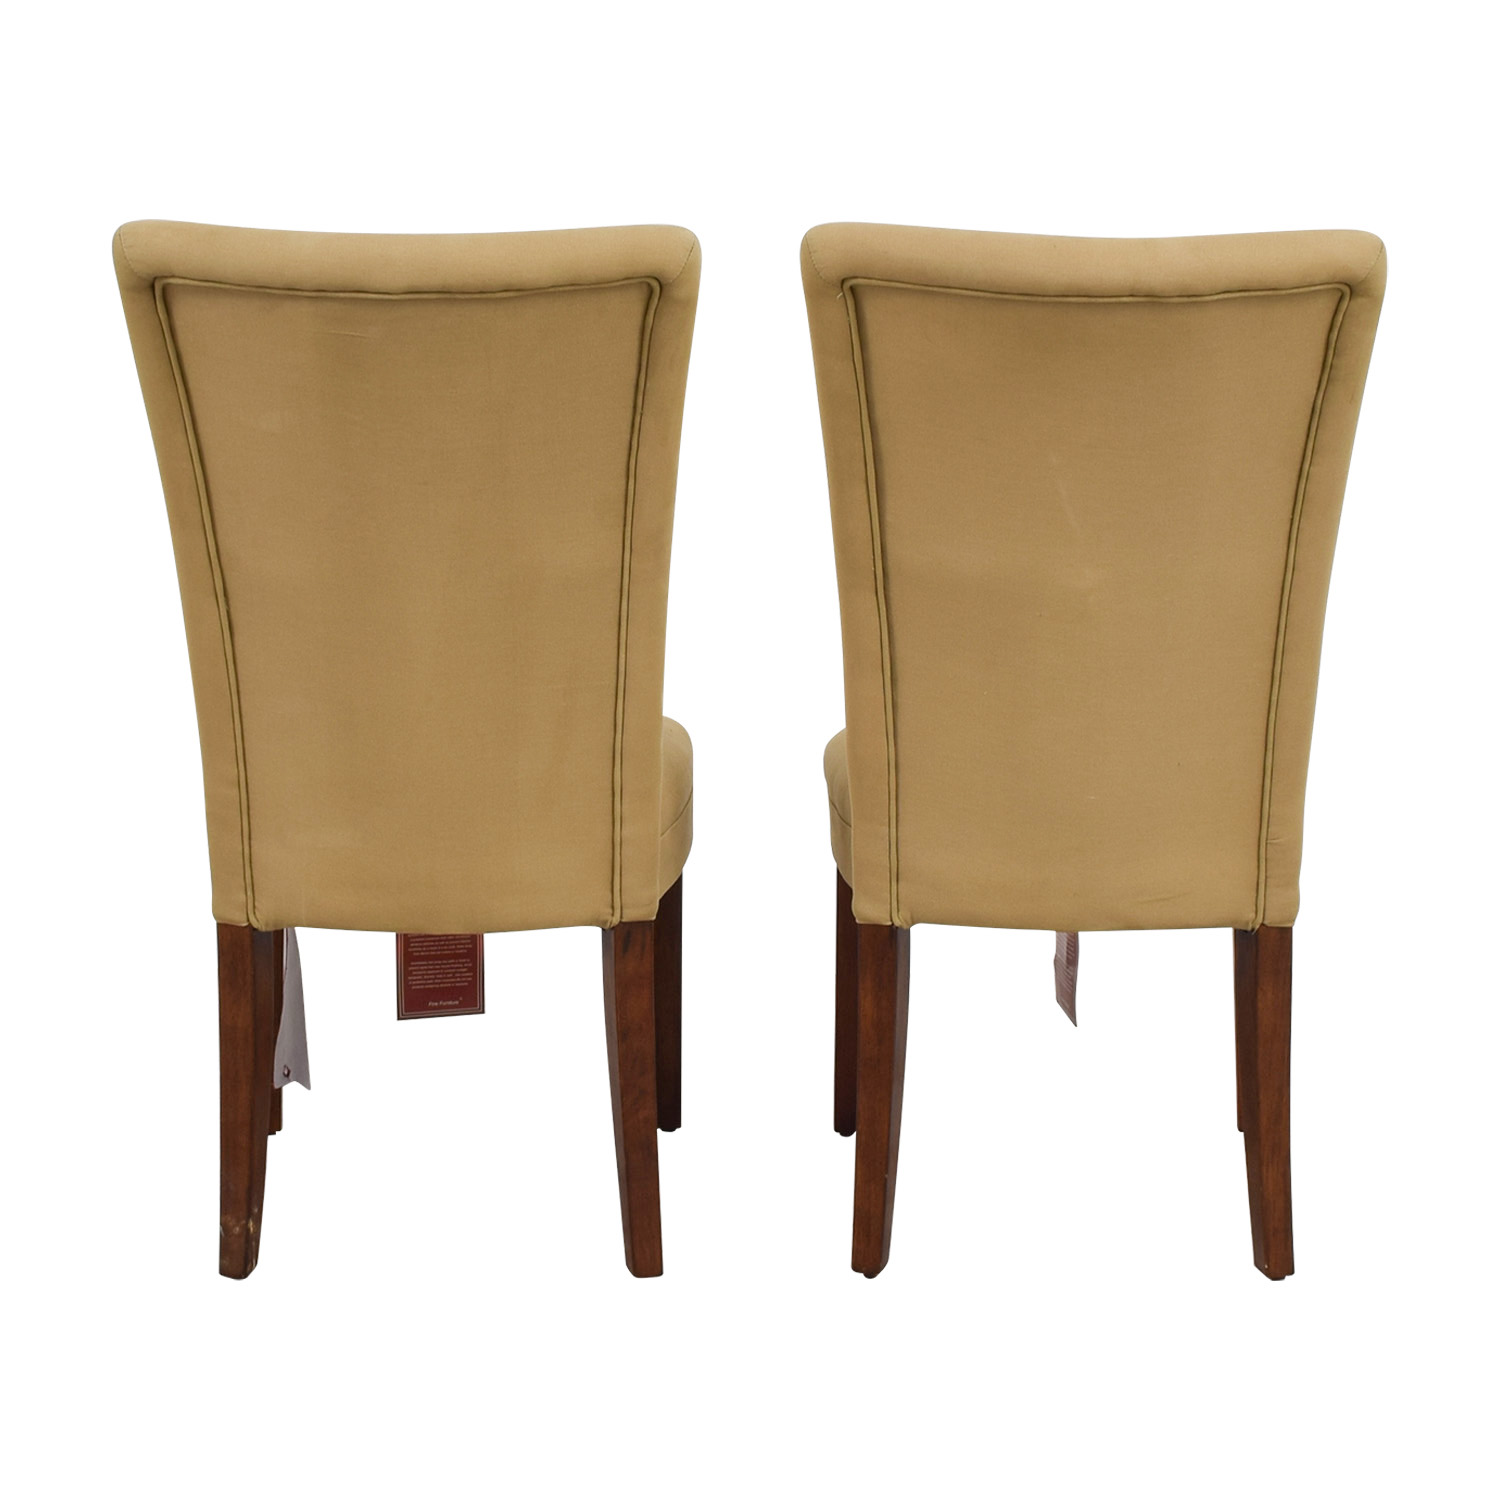 buy Coaster Coaster High Back Tan Chairs online